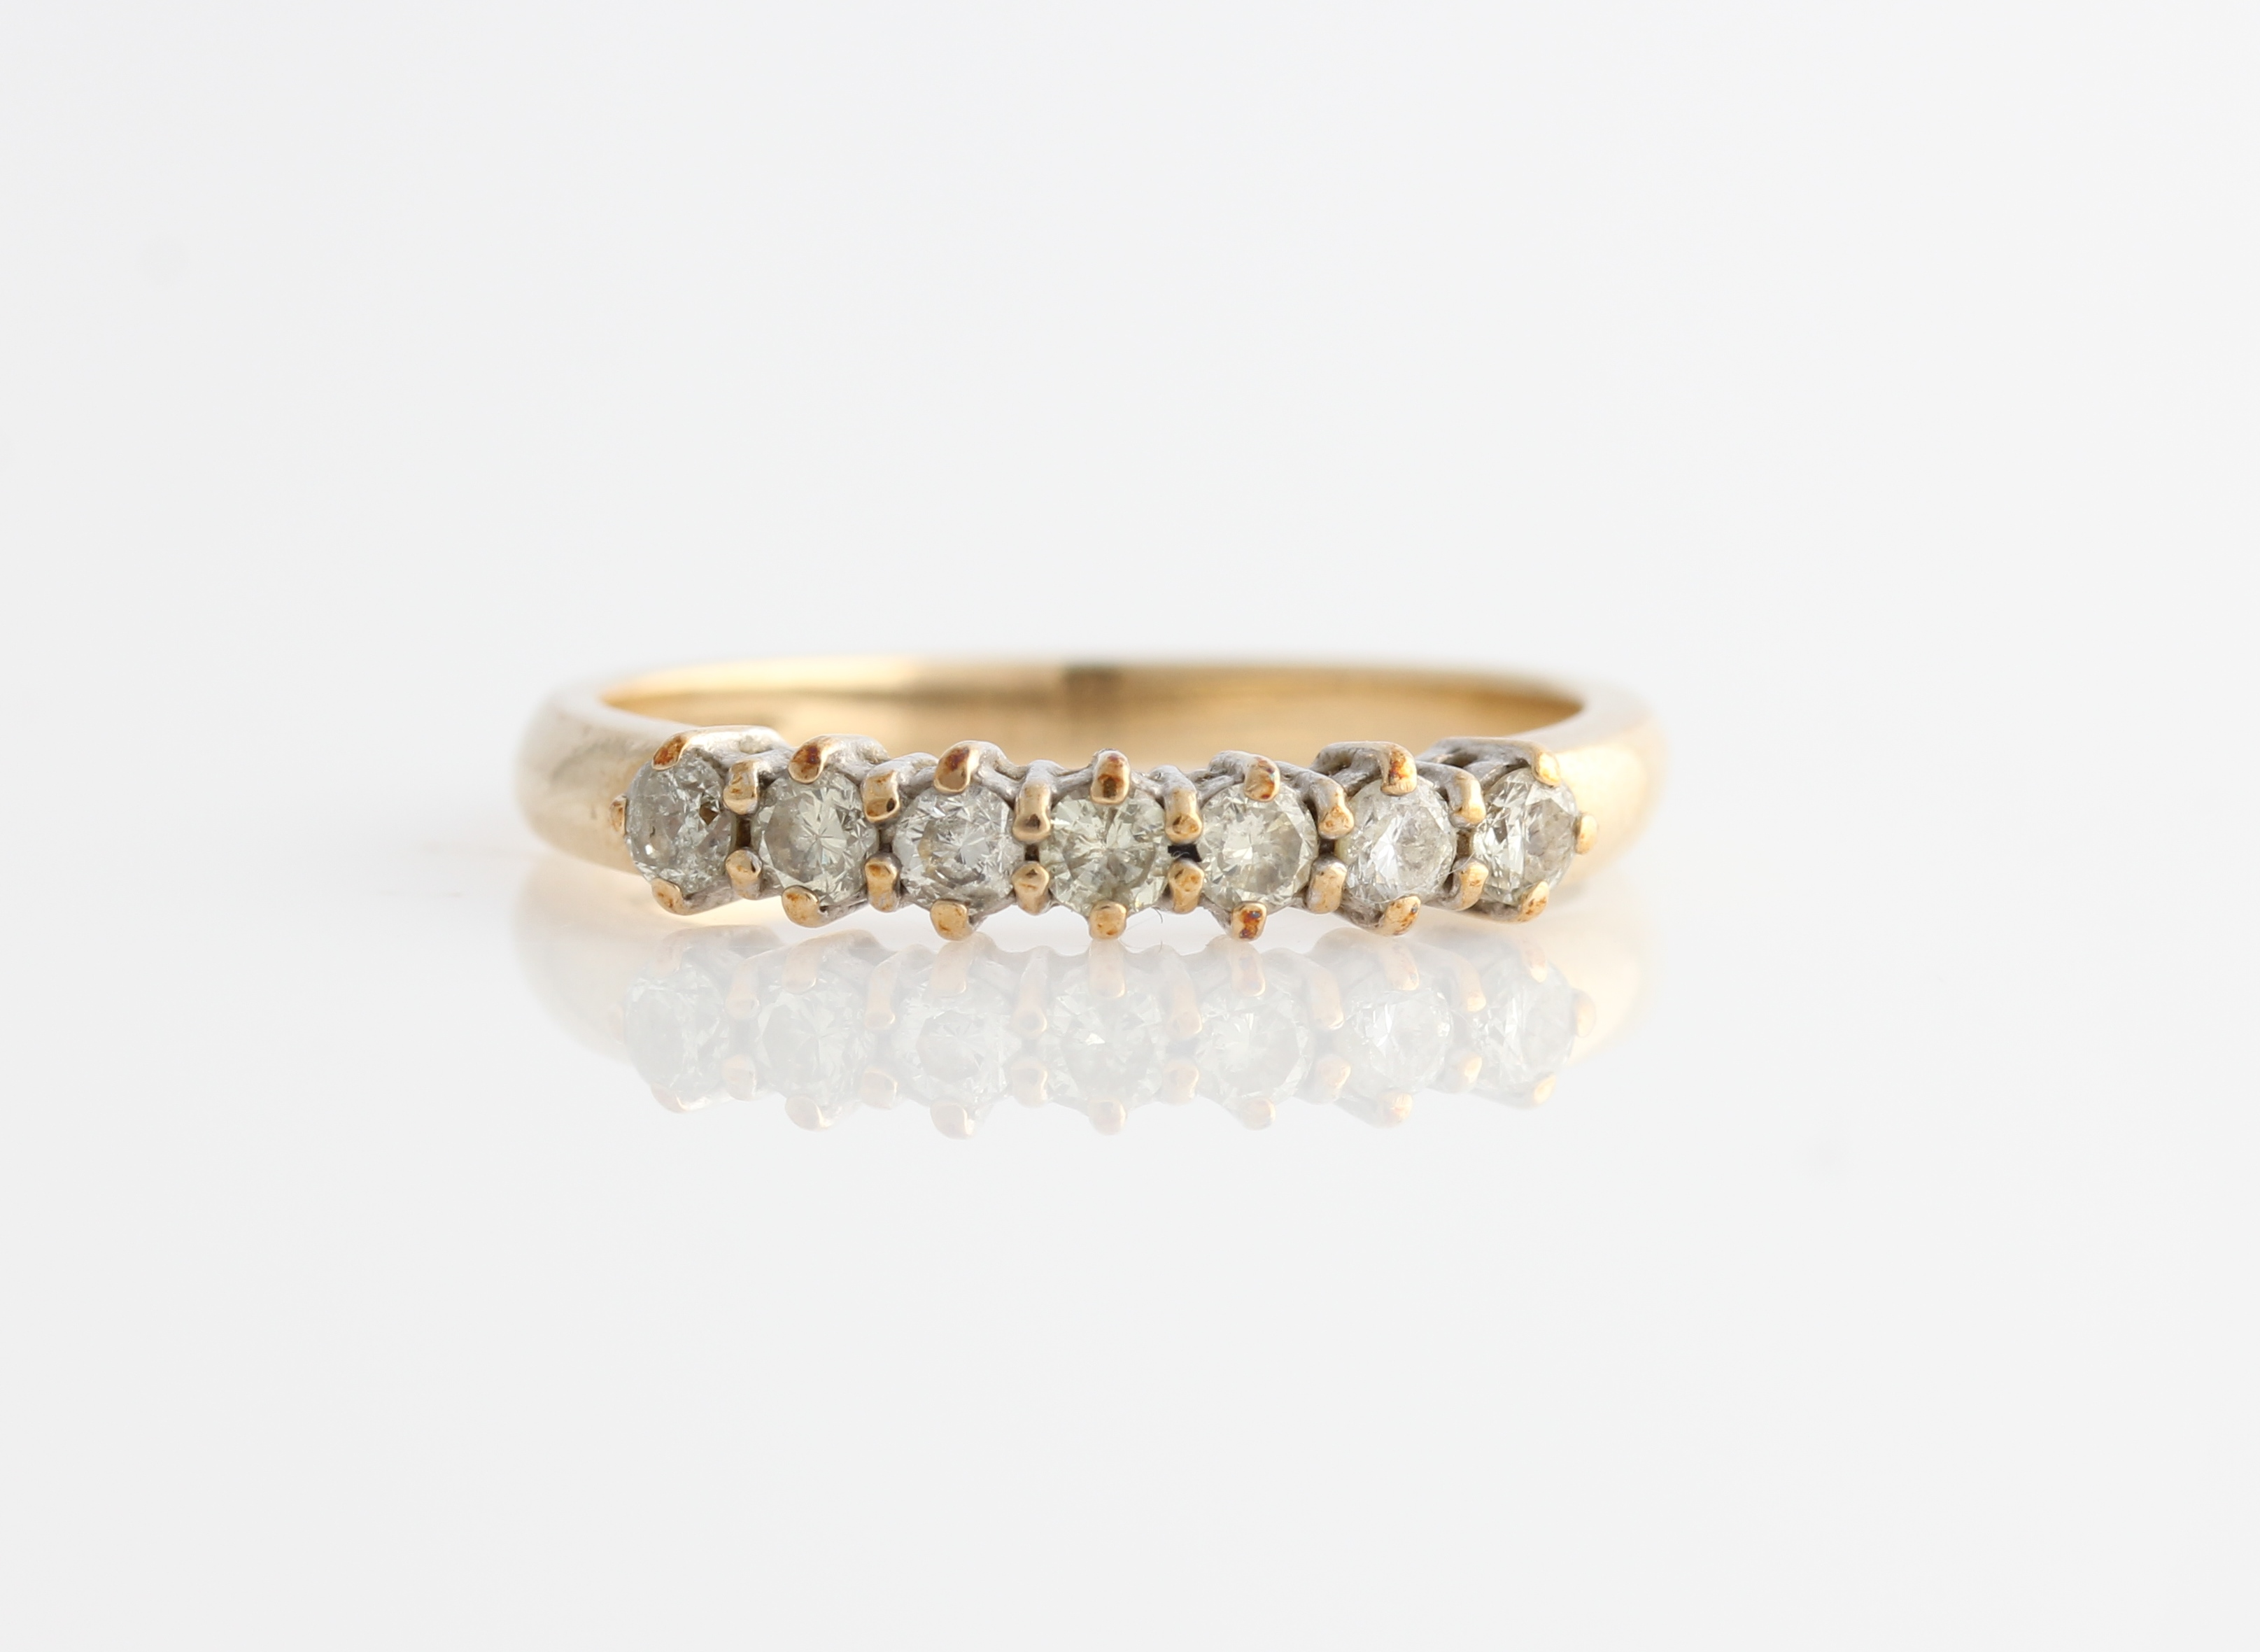 Lot 52 - A hallmarked 9ct yellow gold half eternity ring, set with seven round brilliant cut diamonds,